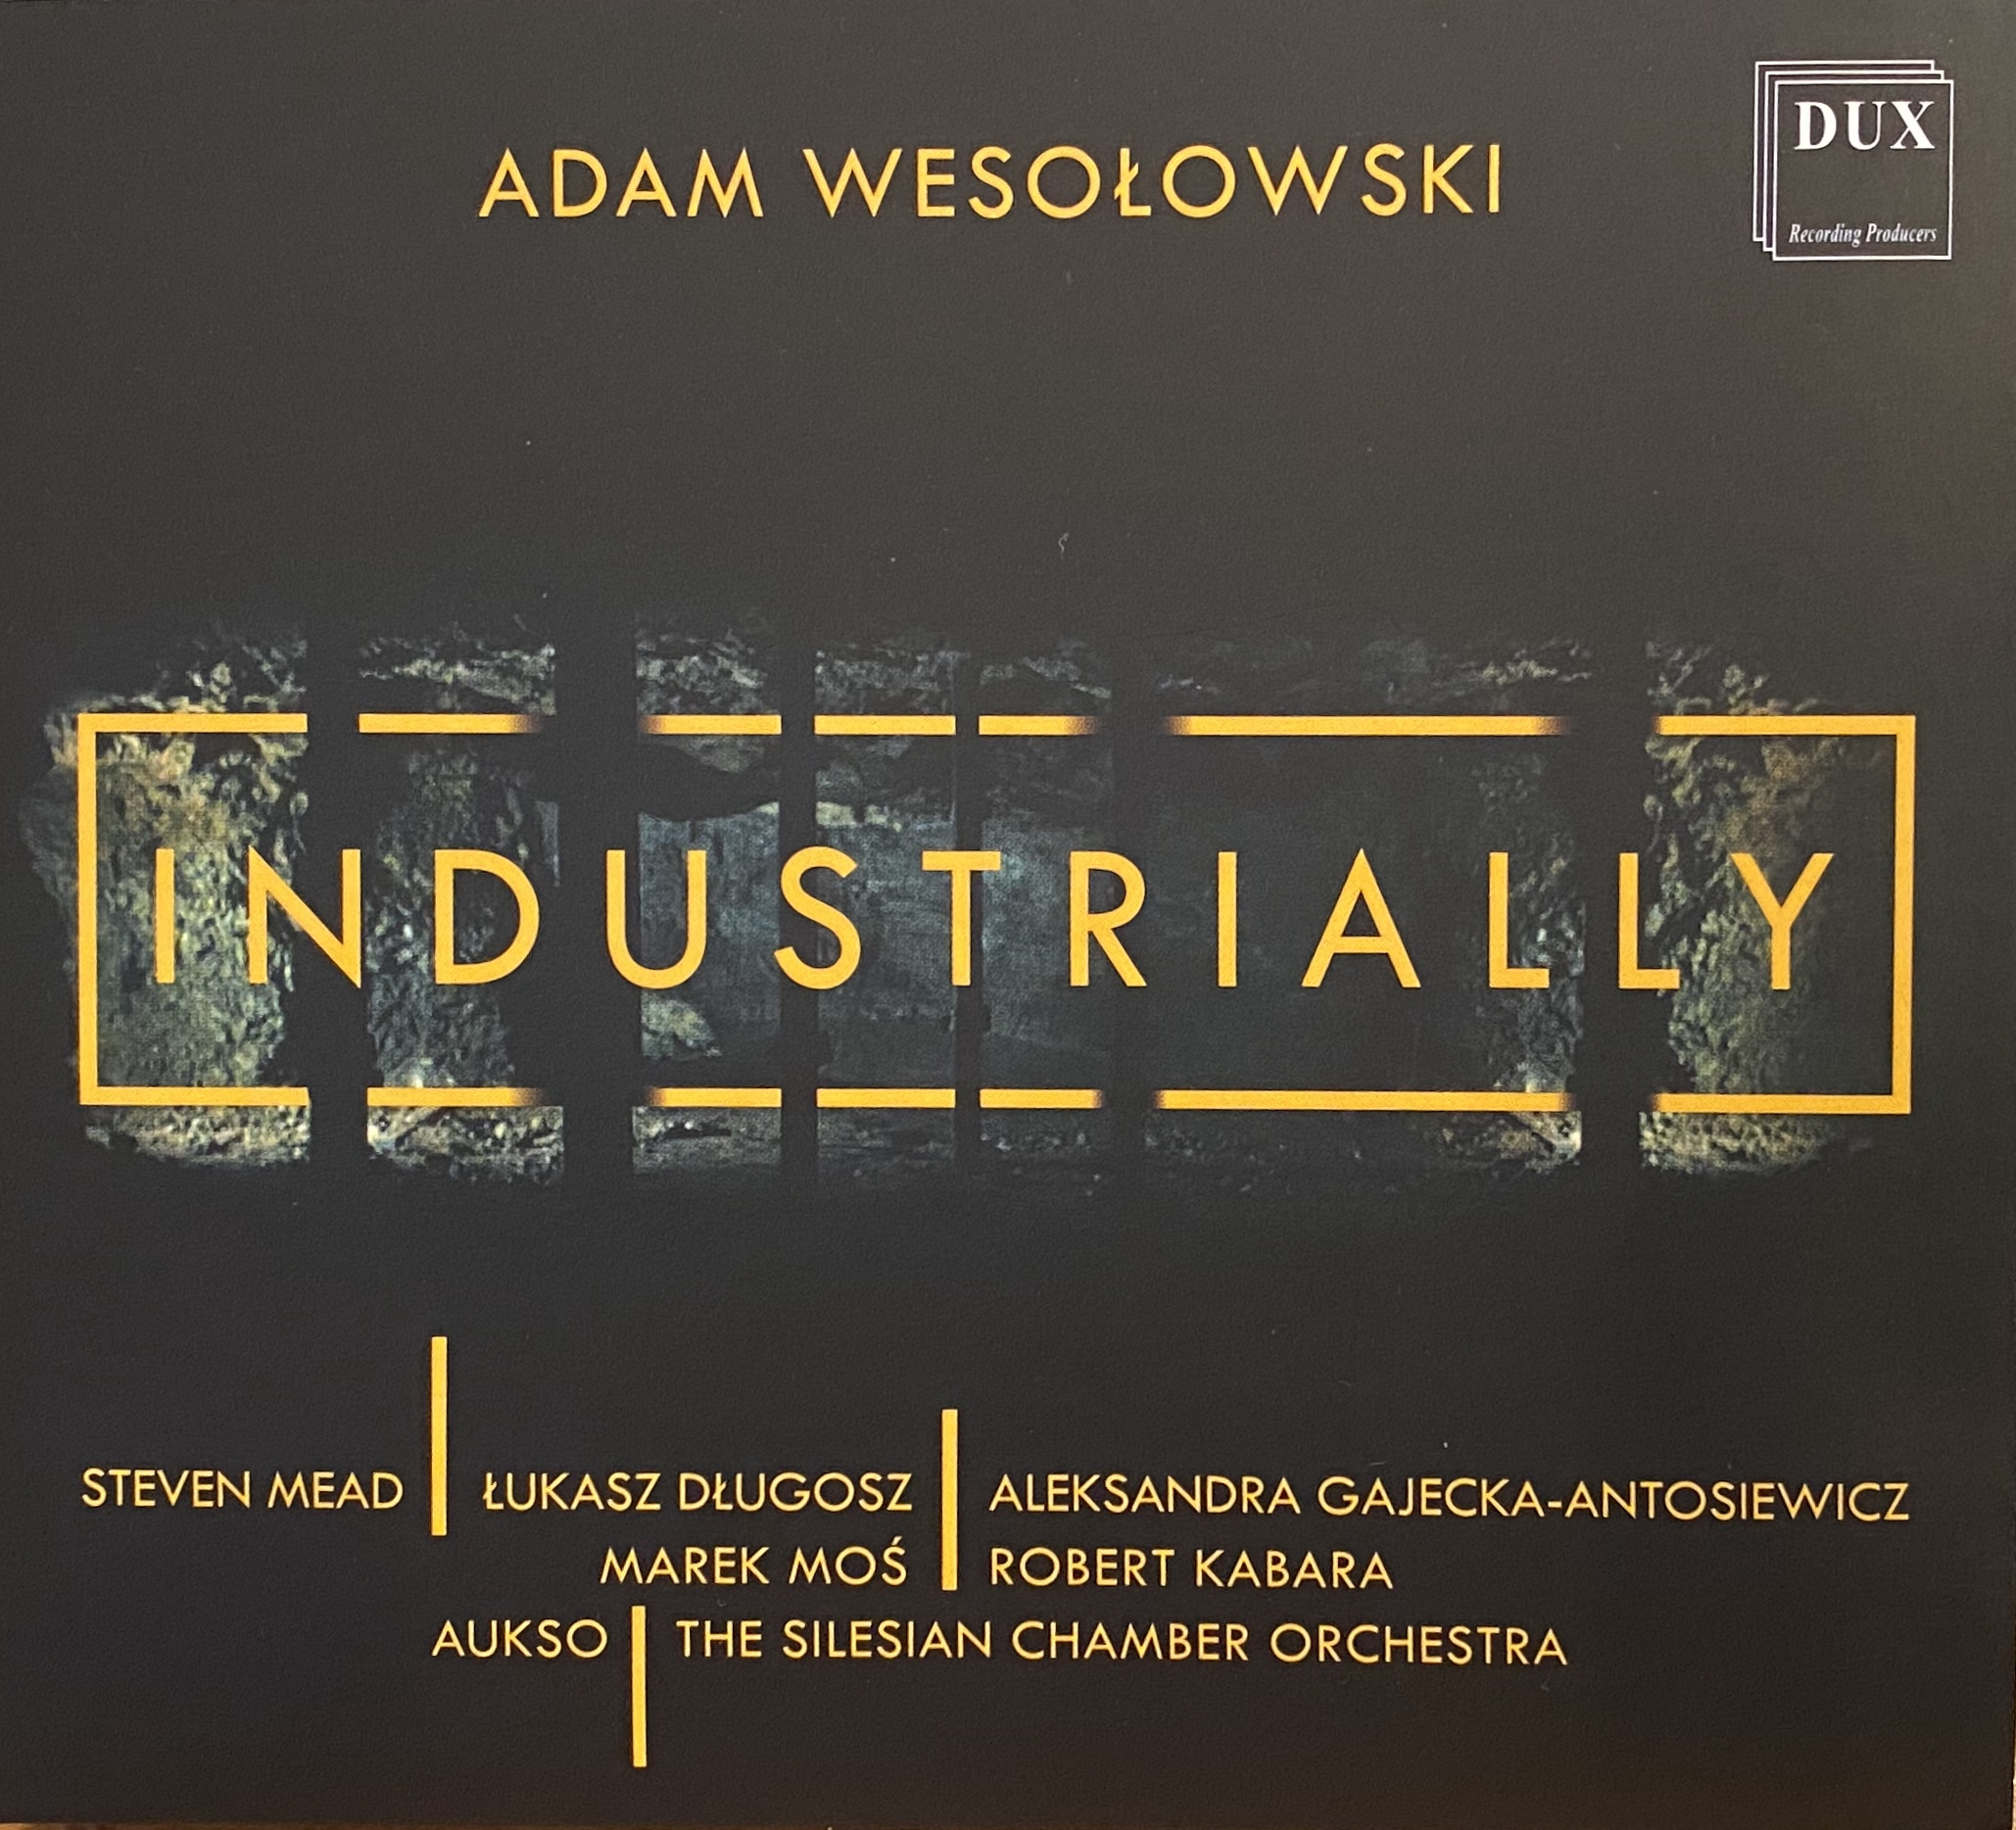 CD - Industrially - 4 major works by Adam Wesolowski and String Orchestra, incl. Euphory Concerto with Steven Mead